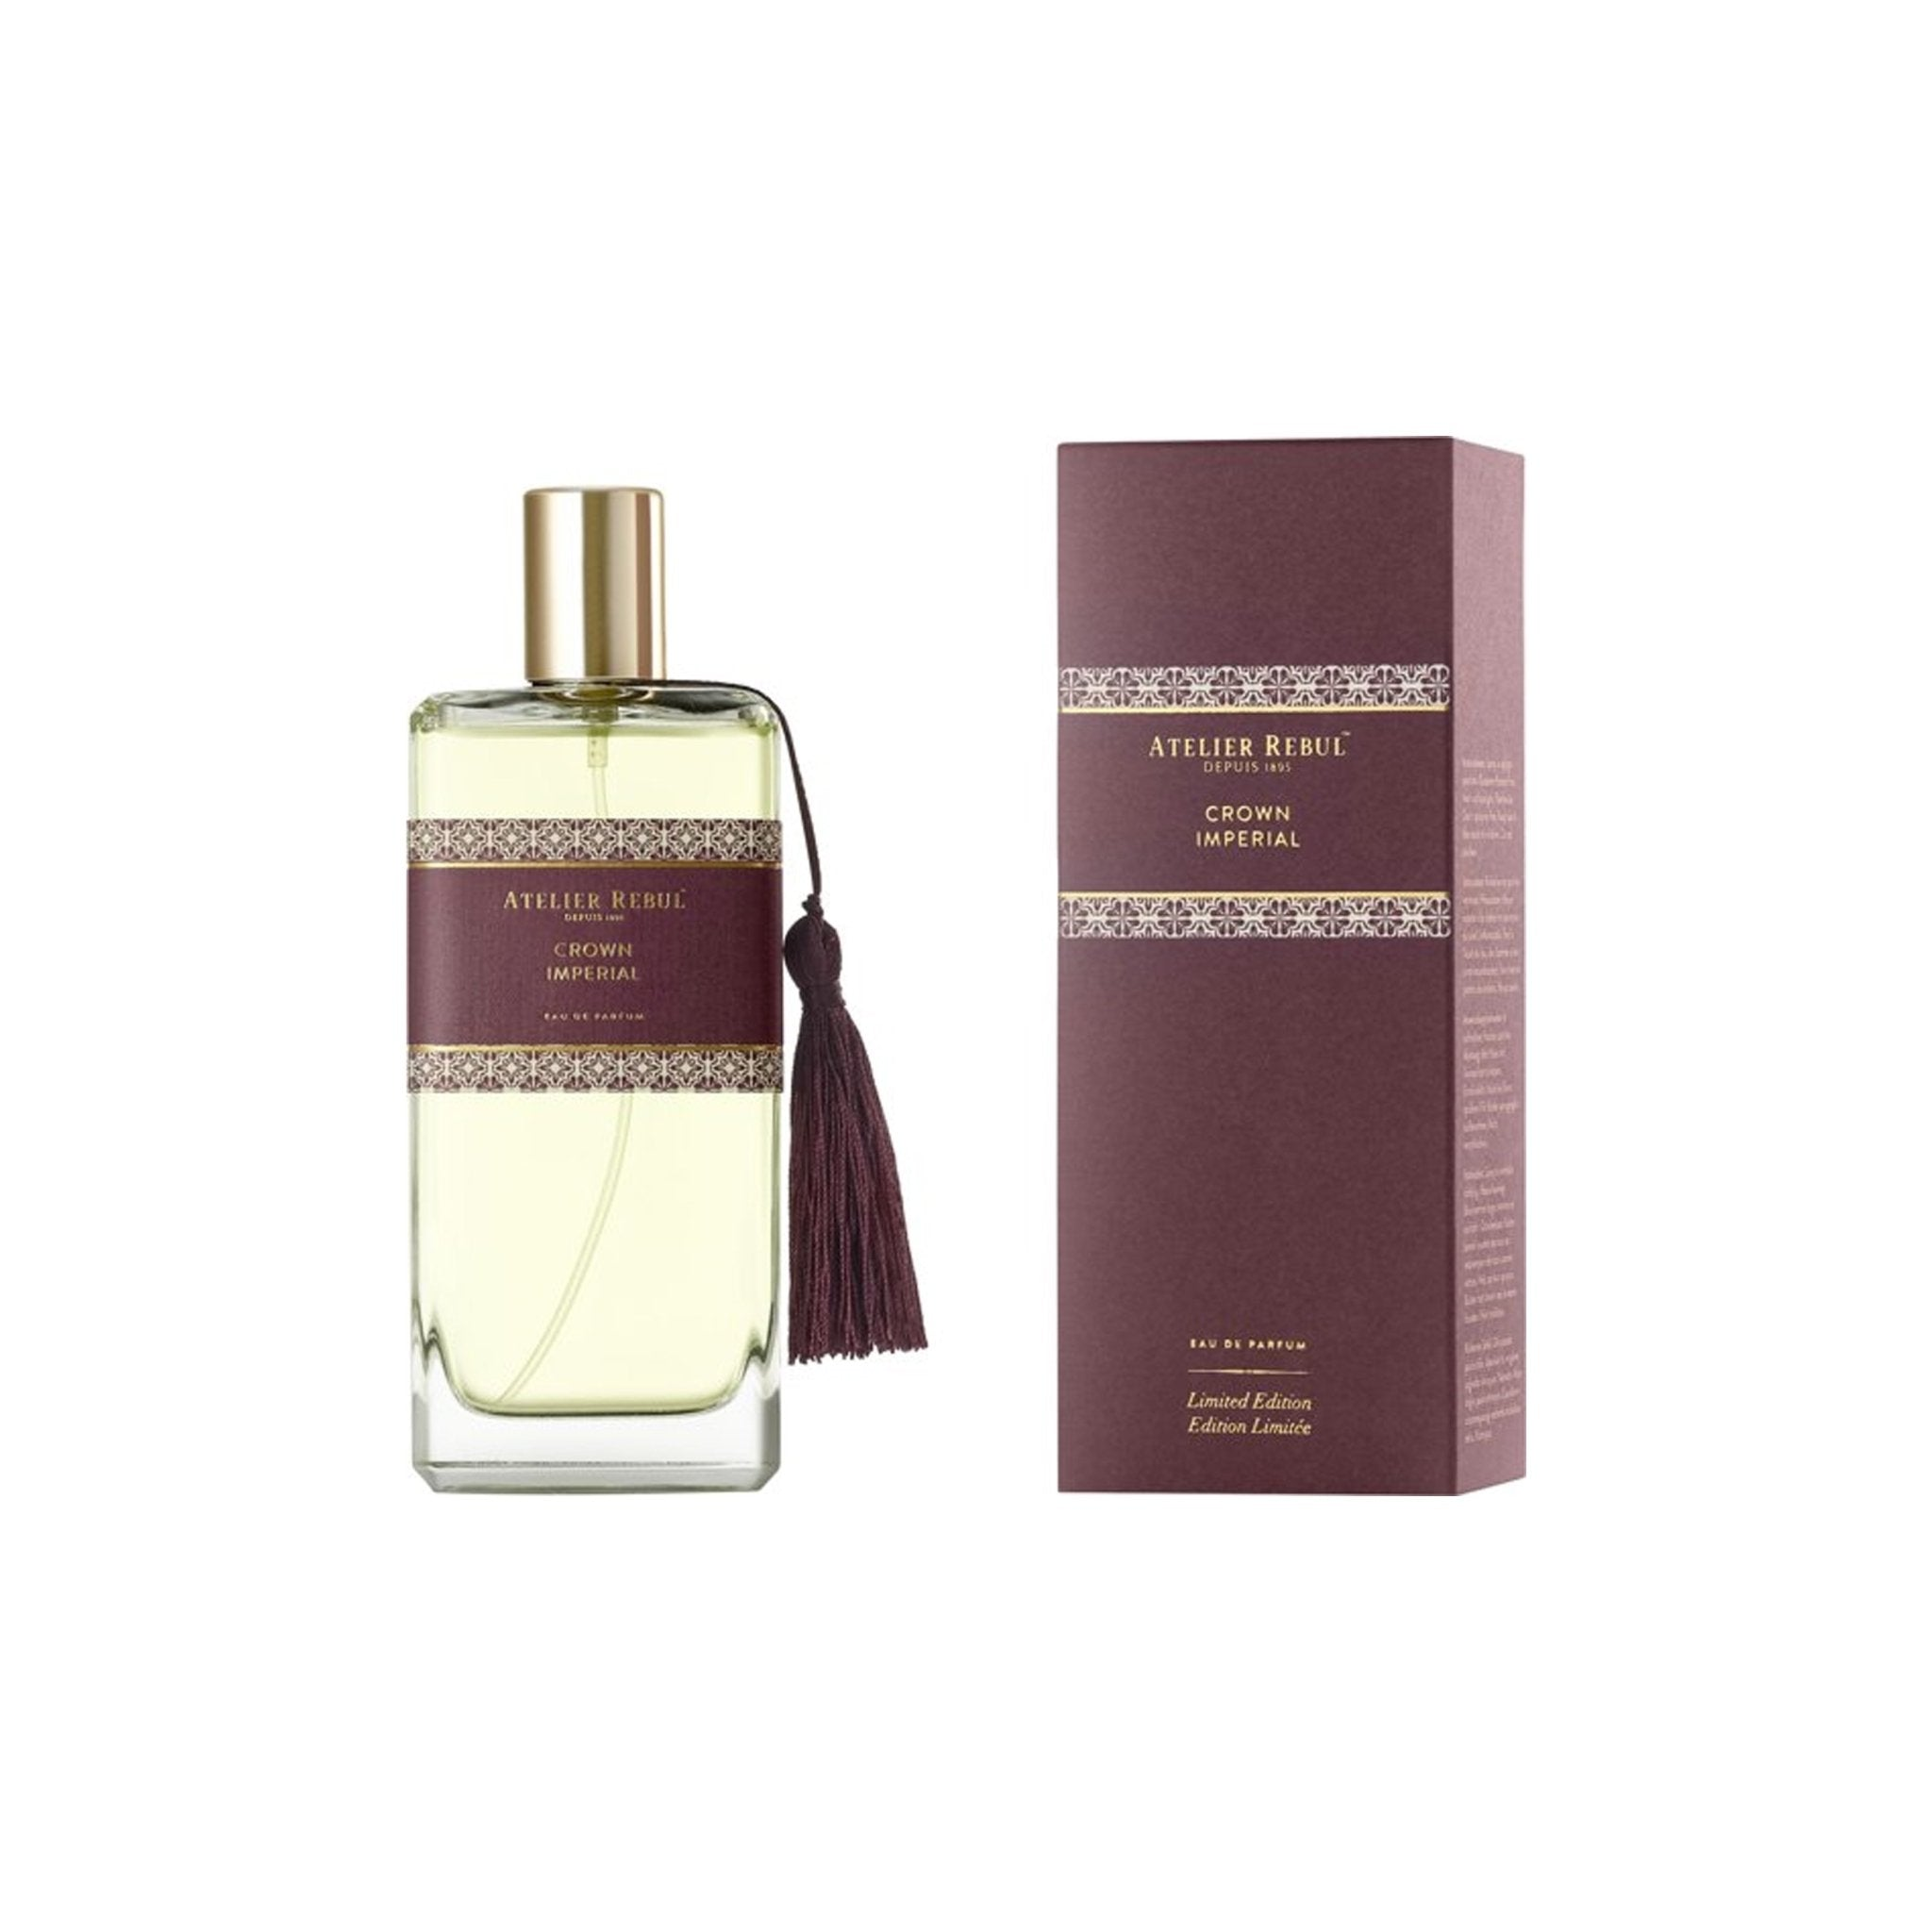 Crown Imperial Eau de Parfum 100ml for Women